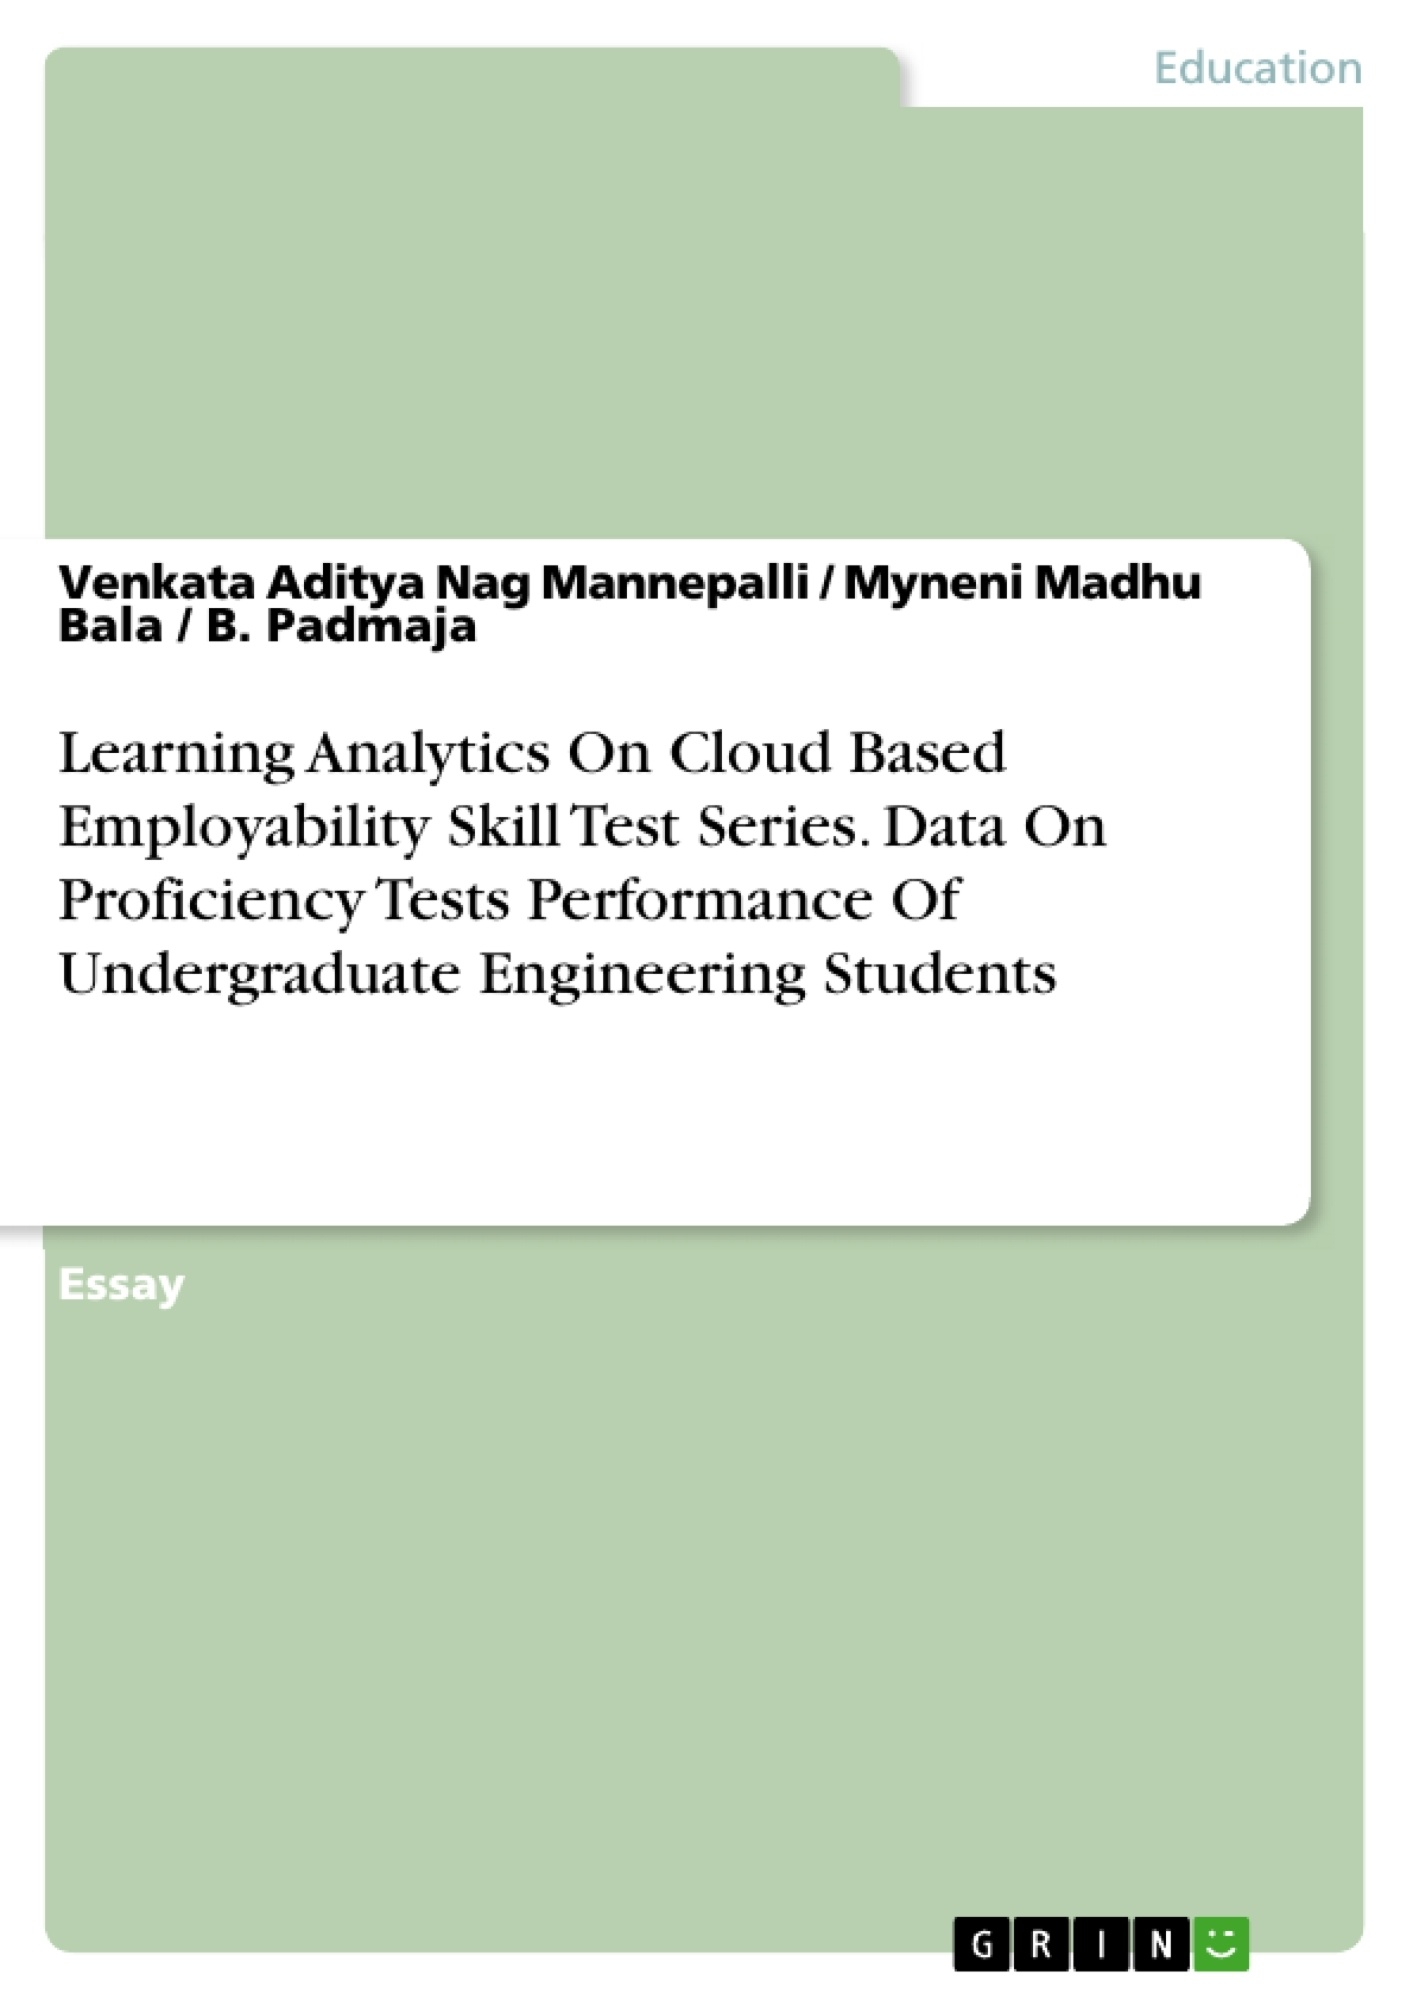 Title: Learning Analytics On Cloud Based Employability Skill Test Series. Data On Proficiency Tests Performance Of Undergraduate Engineering Students